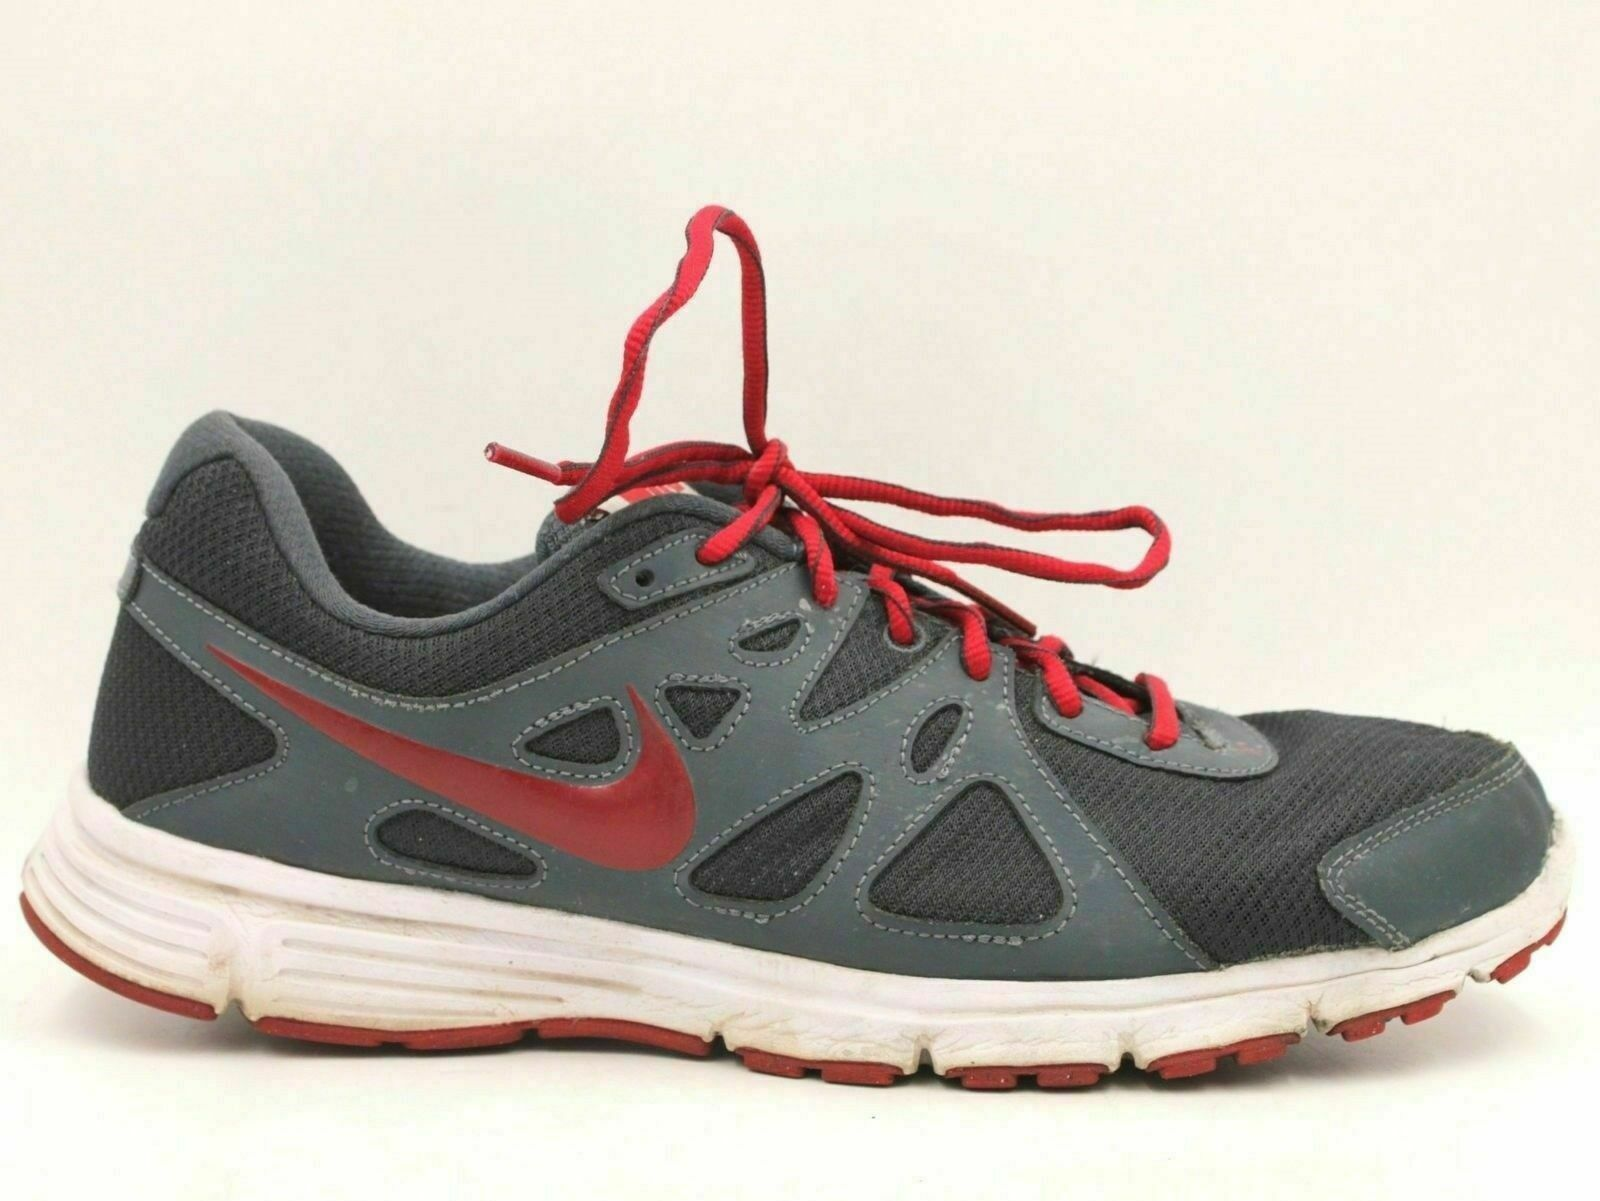 19aea7e348cf Details about NIKE Revolution 2 Men Athletic Running Shoes Size 11.5  Gray Red 554953-044